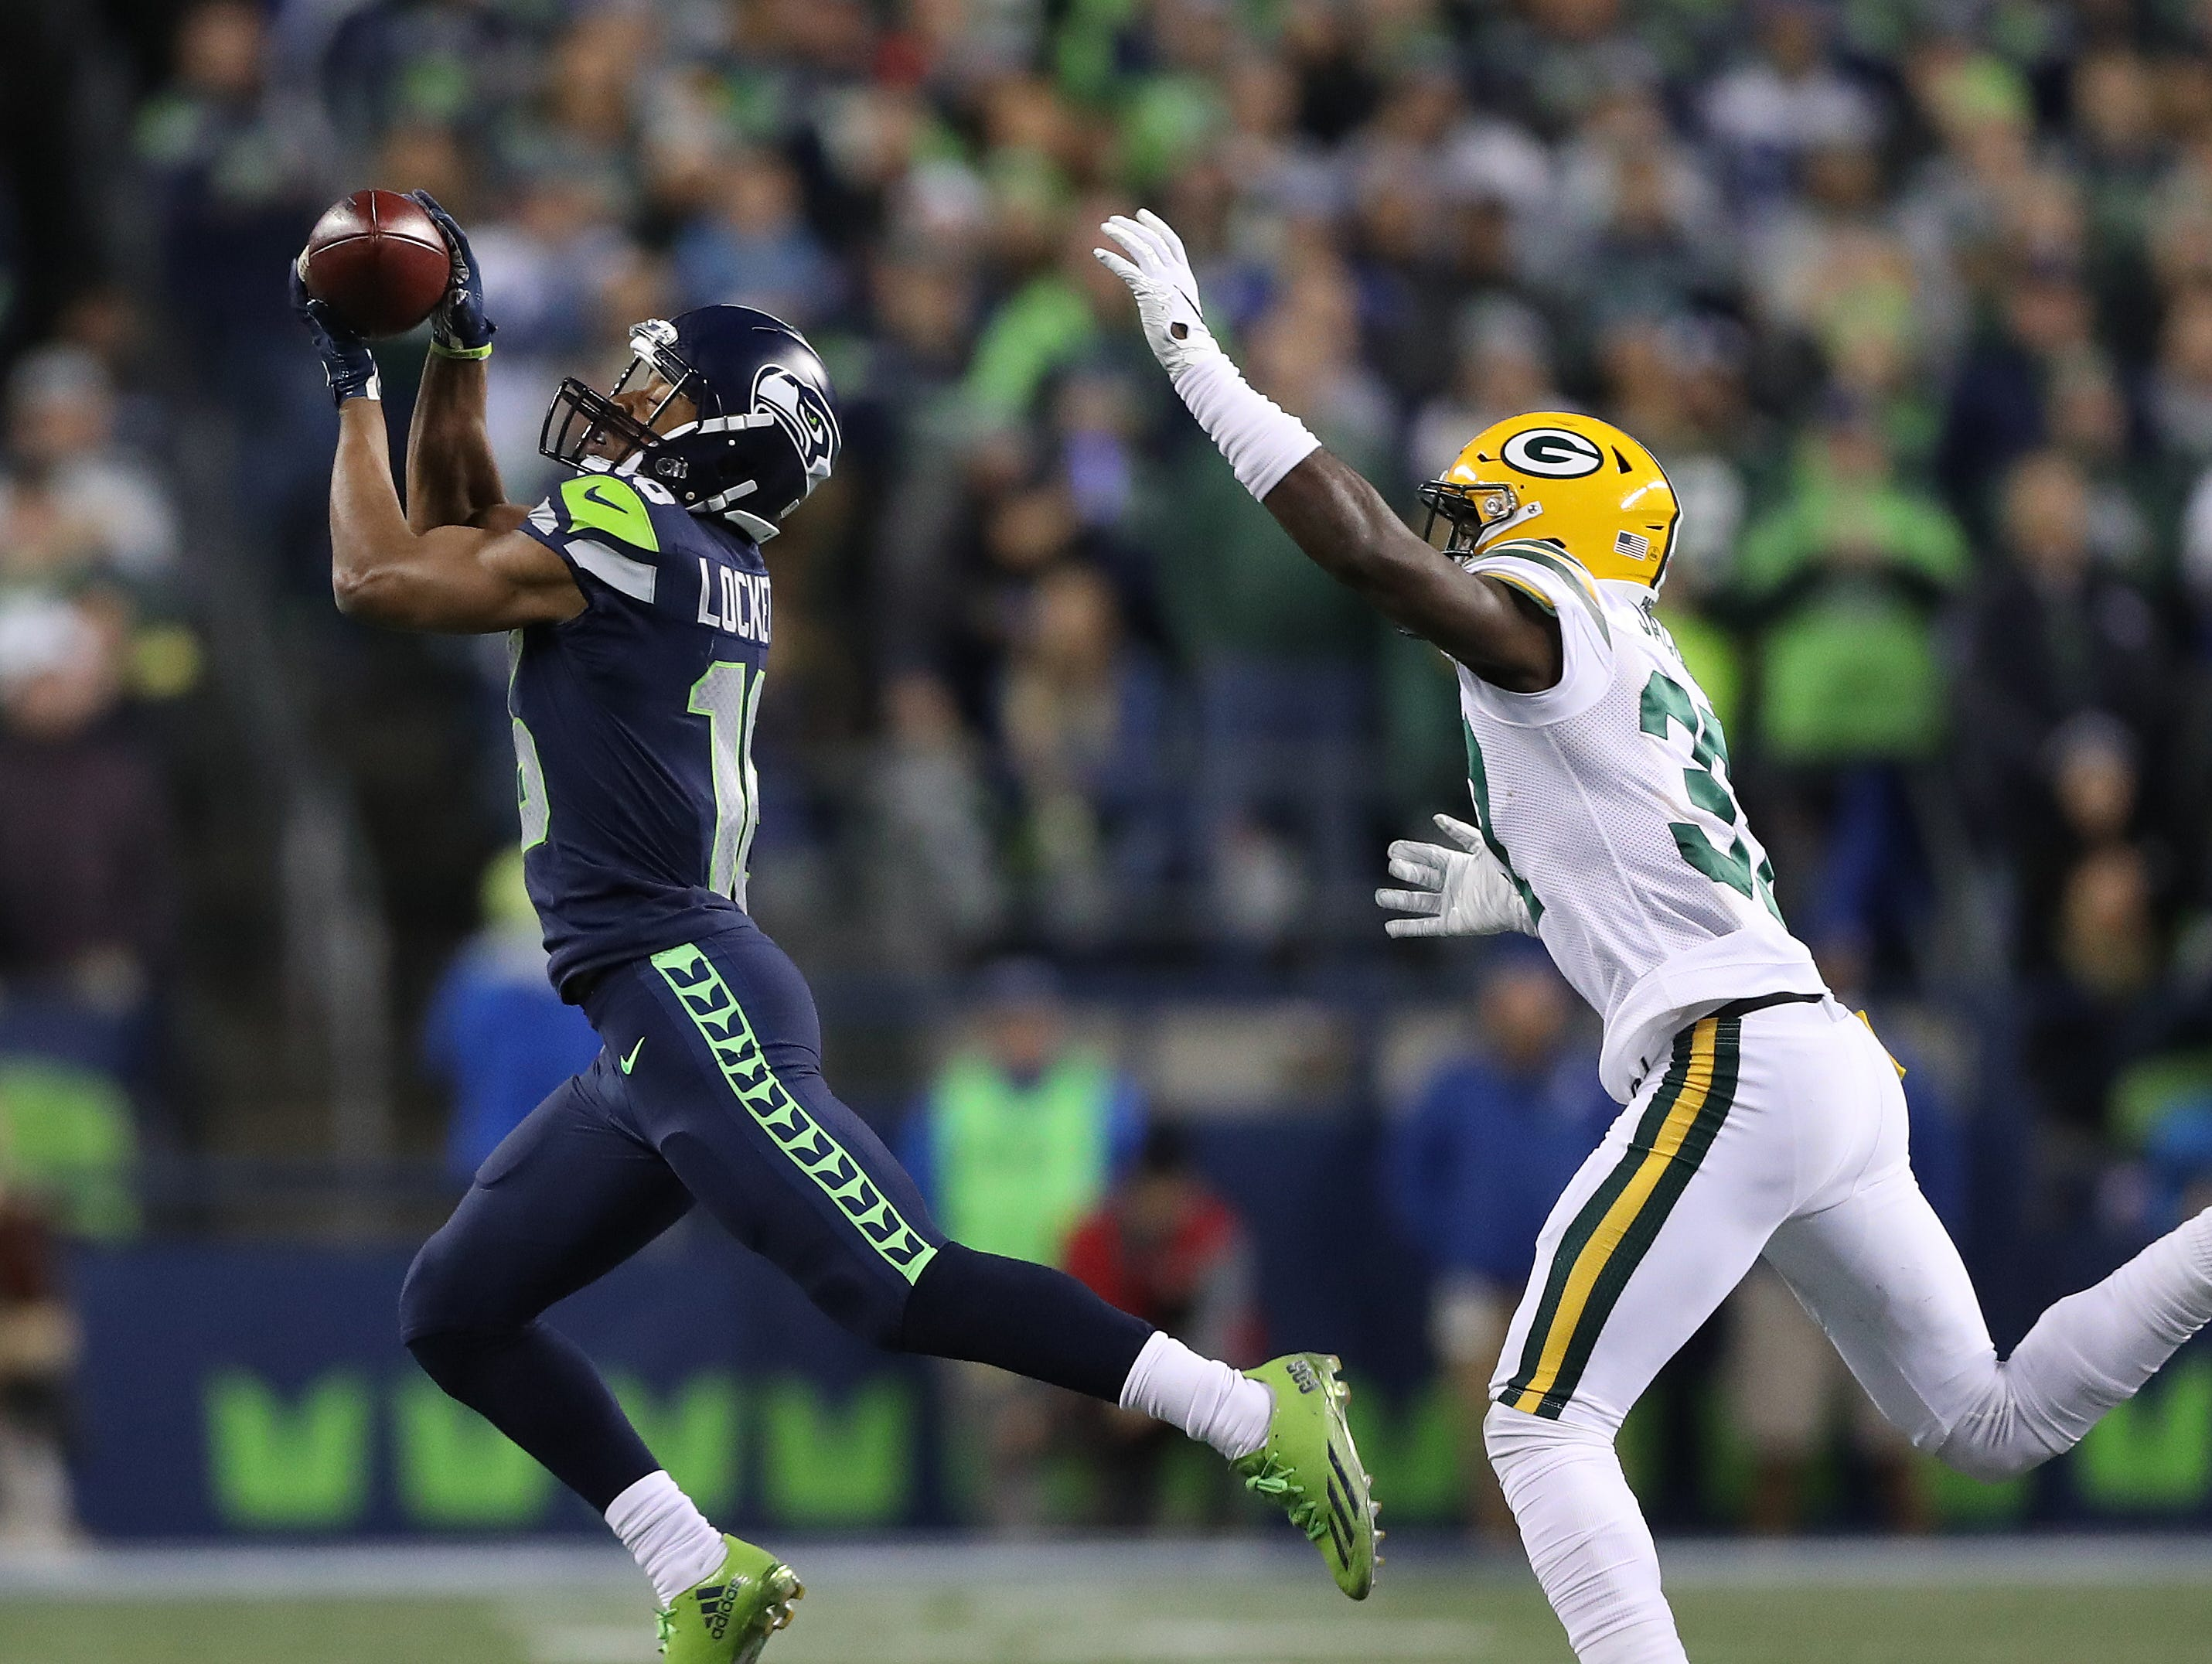 Green Bay Packers cornerback Josh Jackson (37) gets brat on a pass play to wide receiver Tyler Lockett (16) against the Seattle Seahawks at CenturyLink Field Thursday, November 15, 2018 in Seattle, WA. Jim Matthews/USA TODAY NETWORK-Wis